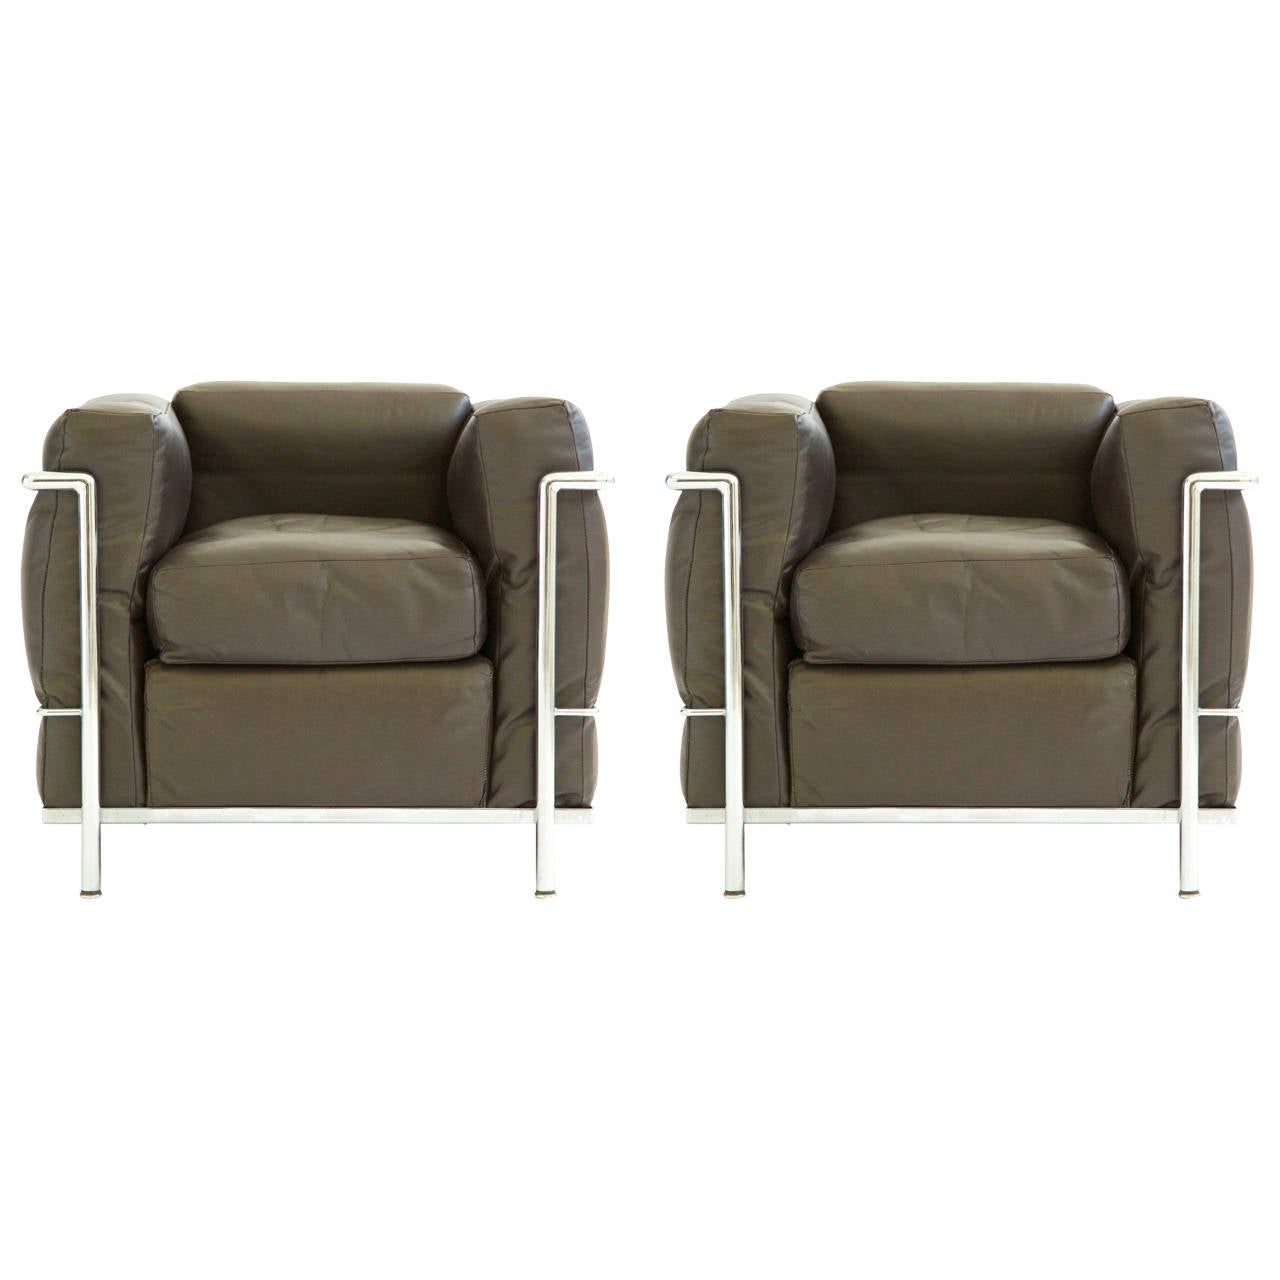 Le corbusier lounge chair - Pair Of Le Corbusier Lounge Chairs Lc2 1